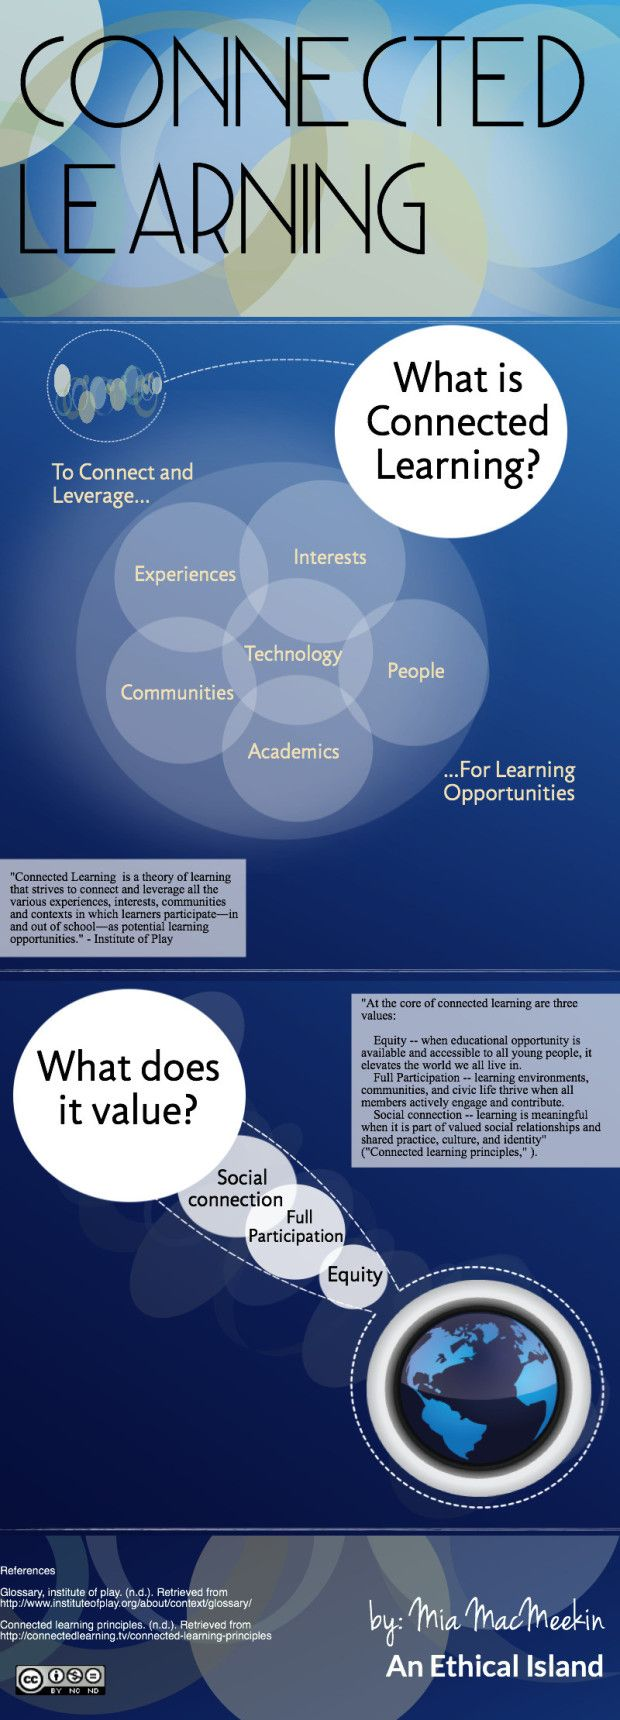 Connected learning brings together all of the various experiences, interests, technology, academics, people and communities that learners are...